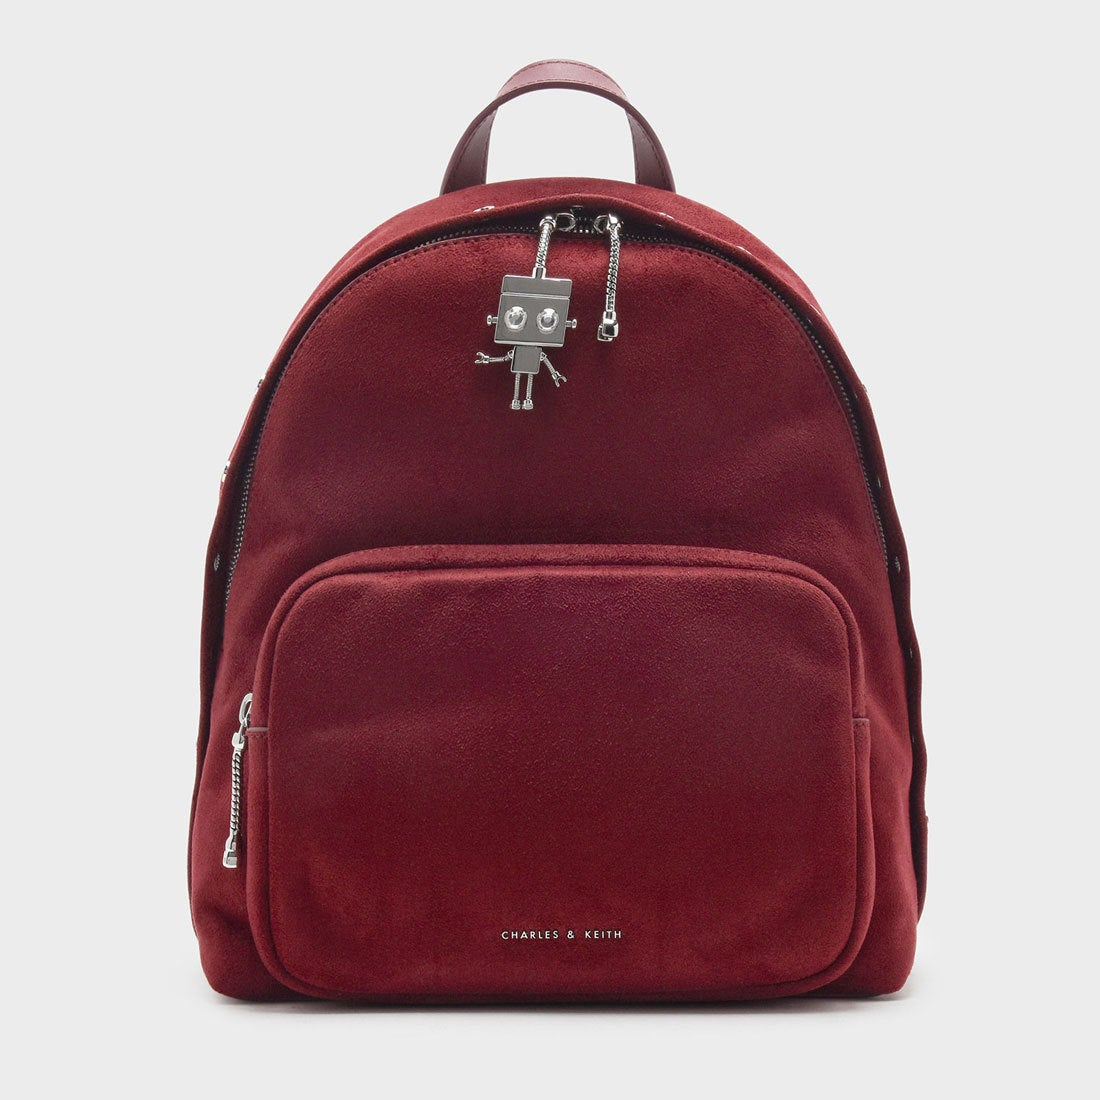 8da2f2b53262 CHARLES & KEITH ロボットチャームバックパック / ROBOT CHARM BACKPACK (Maroon)-CHARLES &  KEITH公式オンラインストア